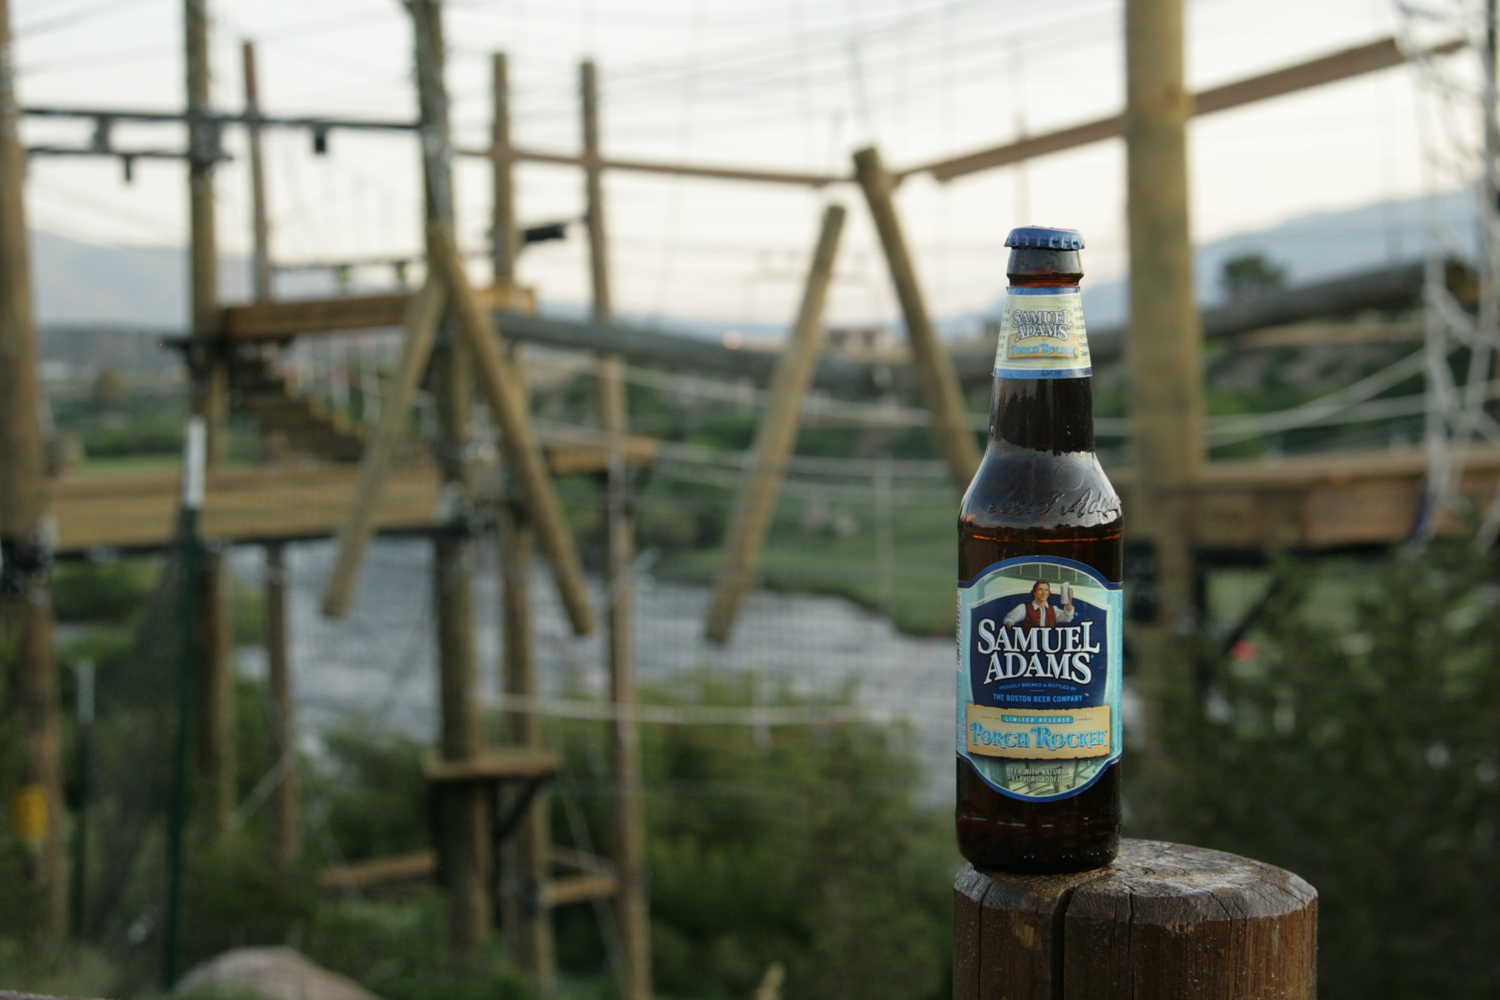 Porch Rocker Samuel Adams radler is a well crafted summer beer.